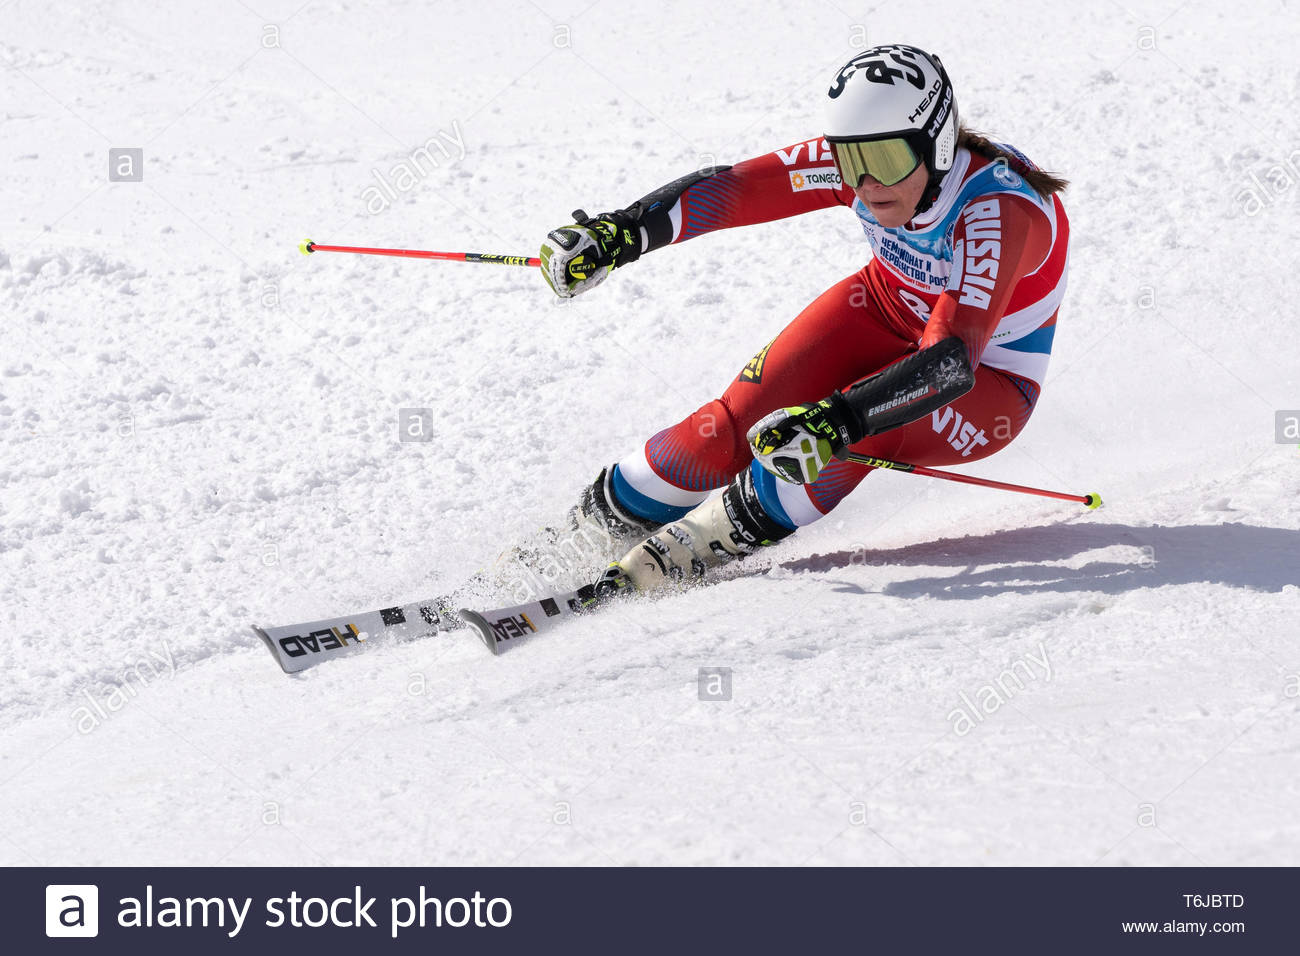 KAMCHATKA PENINSULA, RUSSIAN FEDERATION - APRIL 1, 2019: Mountain skier Julia Pleshkova (Kamchatka Region) skiing down snowy mountain slope. Russian W - Stock Image